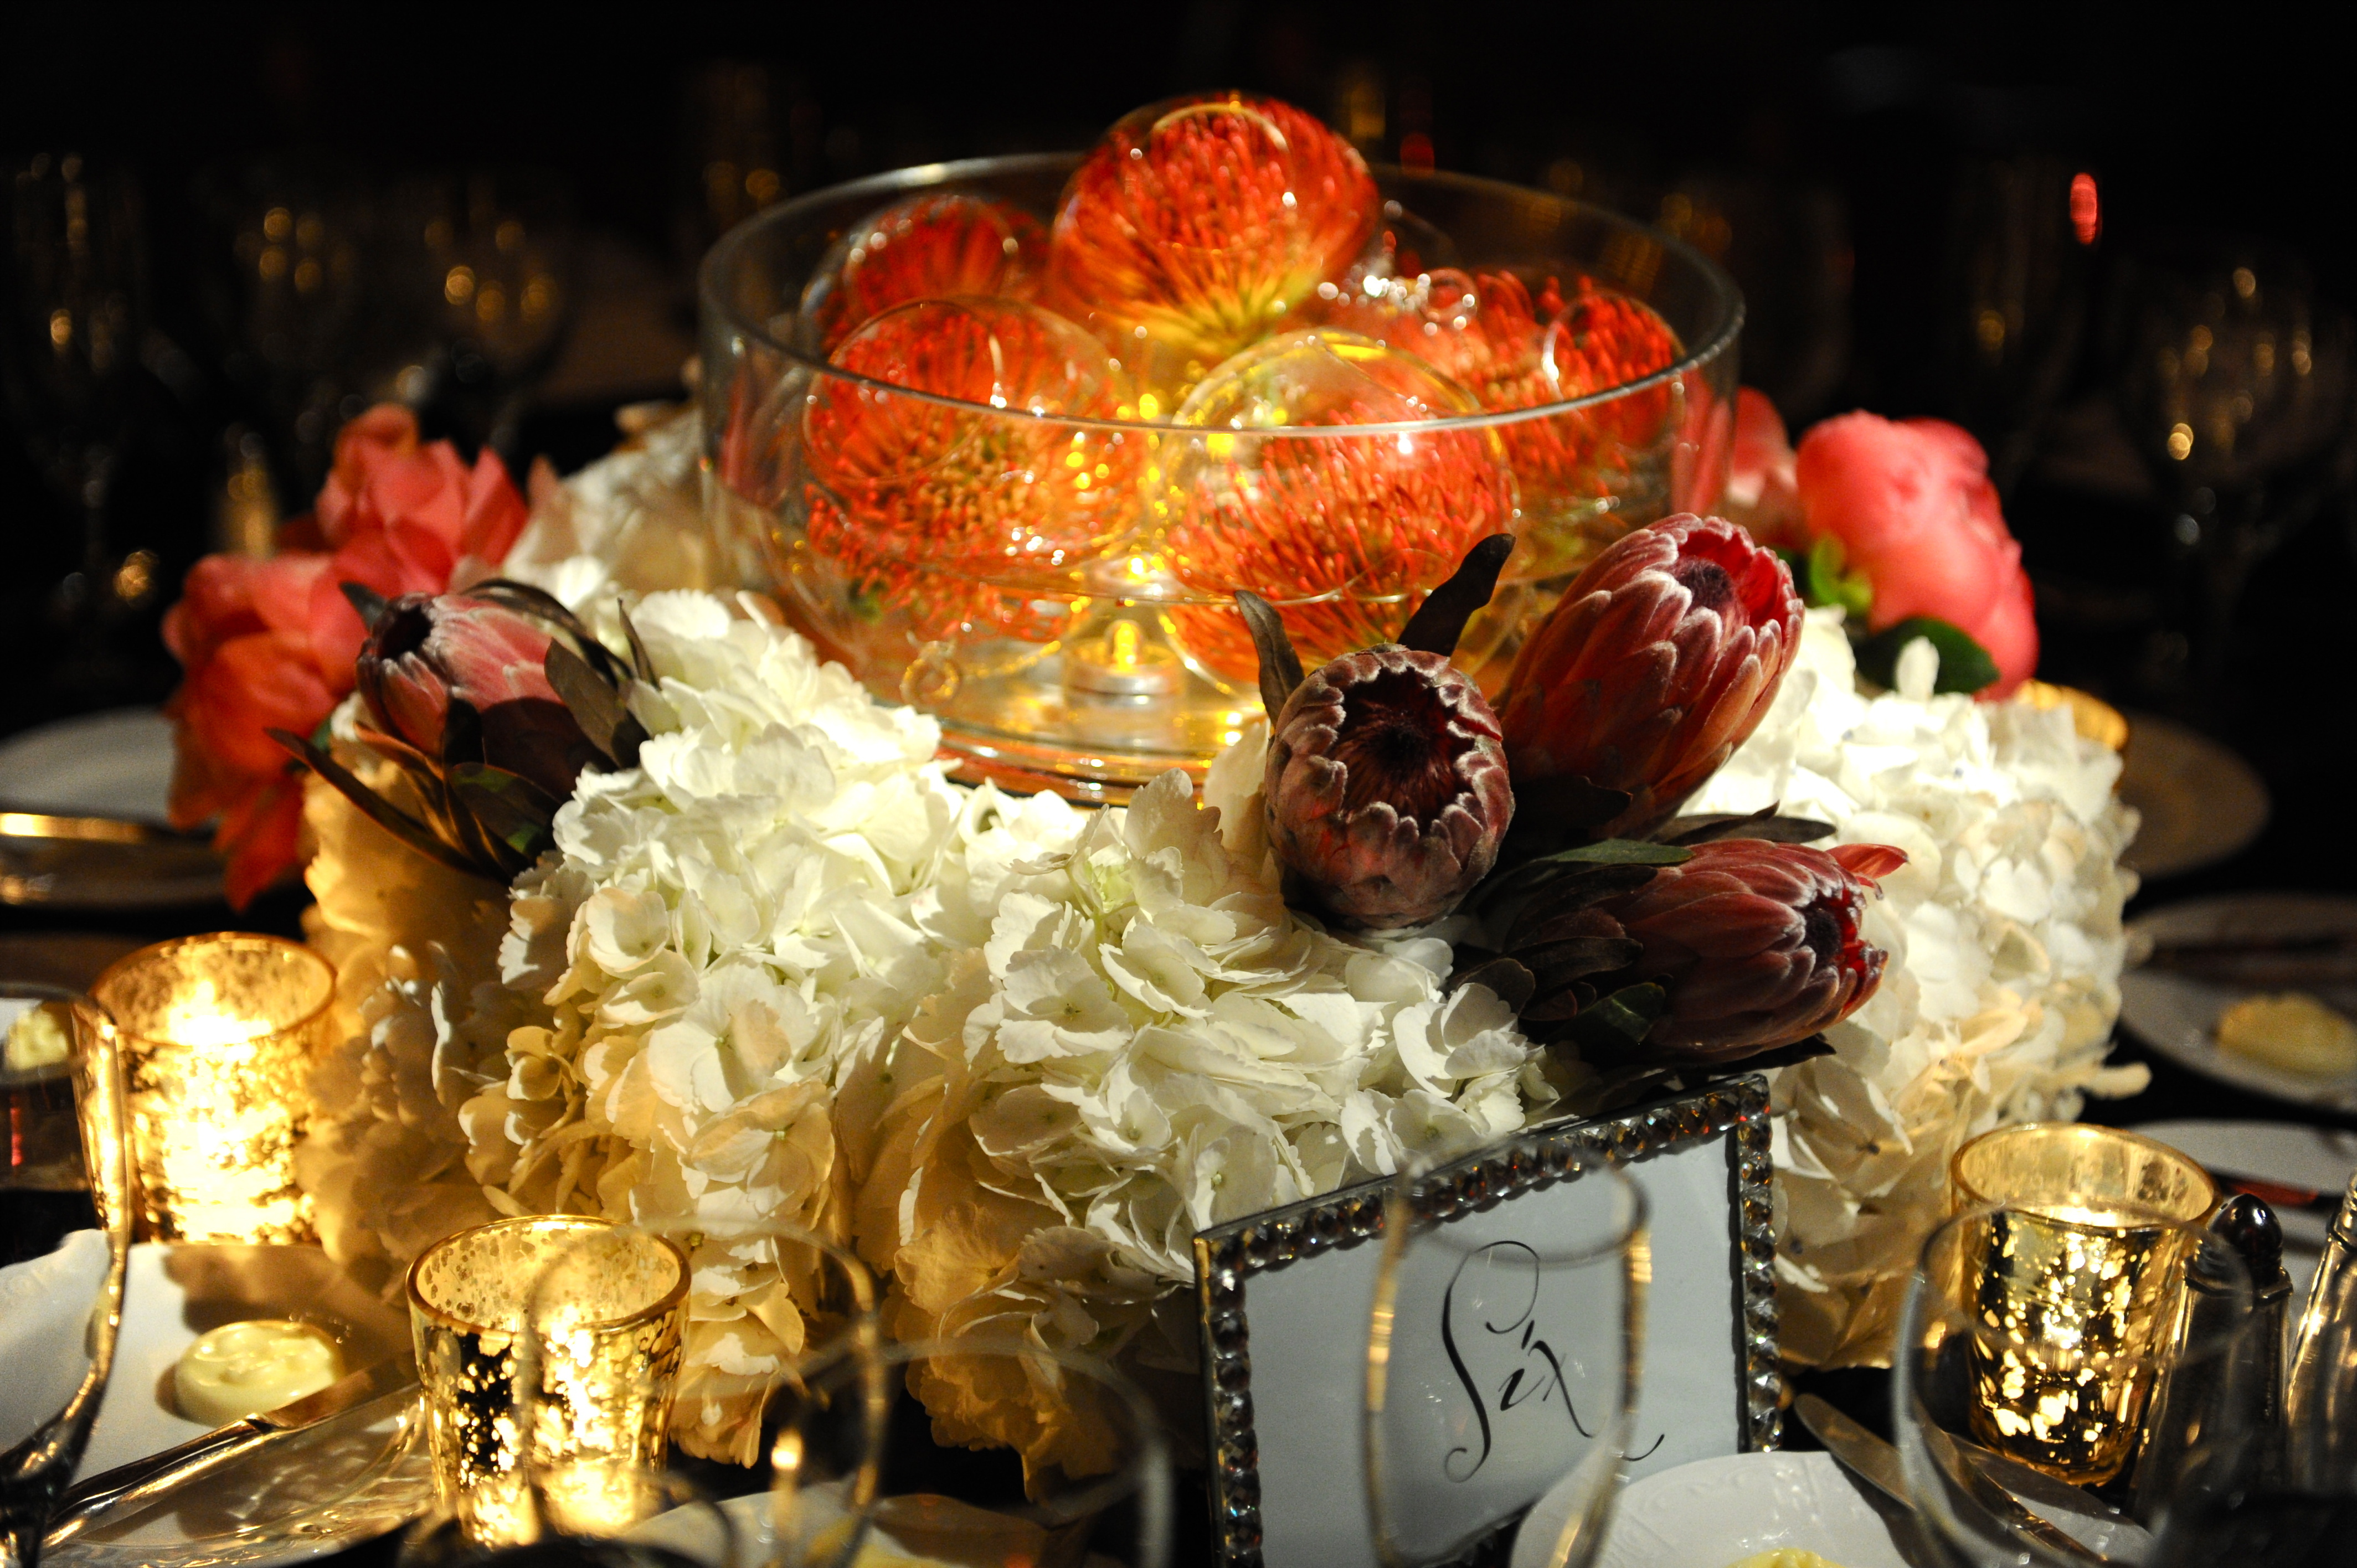 orange, Centerpiece, Wedding, Coral, Formal, Tablescape, Dramatic, Persephone eddie